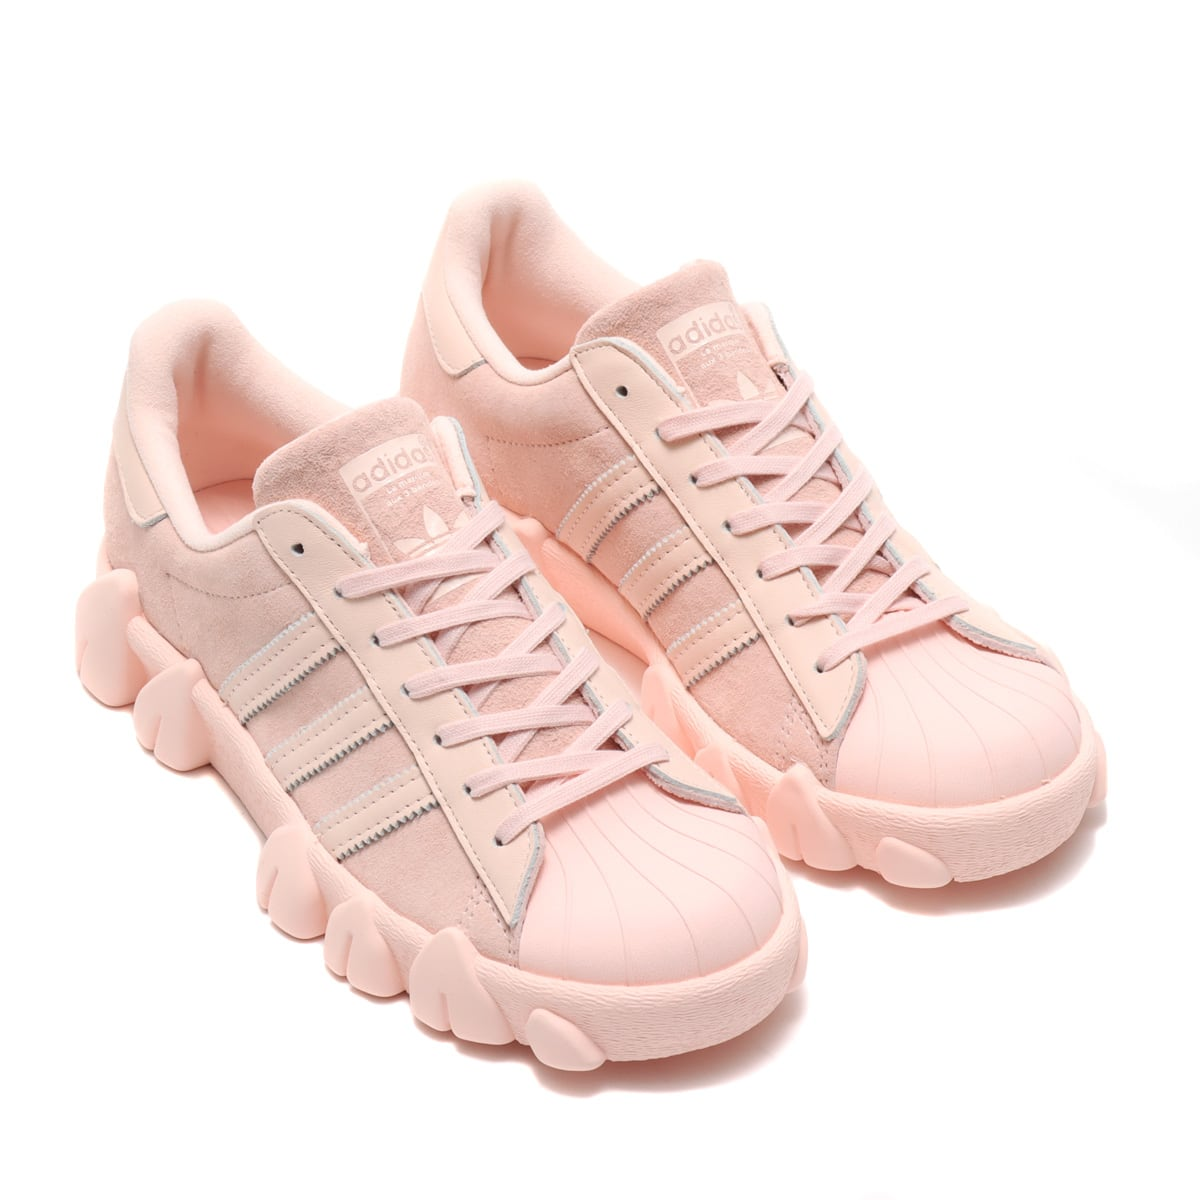 adidas Consortium SUPERSTAR80S AC ICEY PINK/ICEY PINK/FTWR WHITE 20FW-S_photo_large